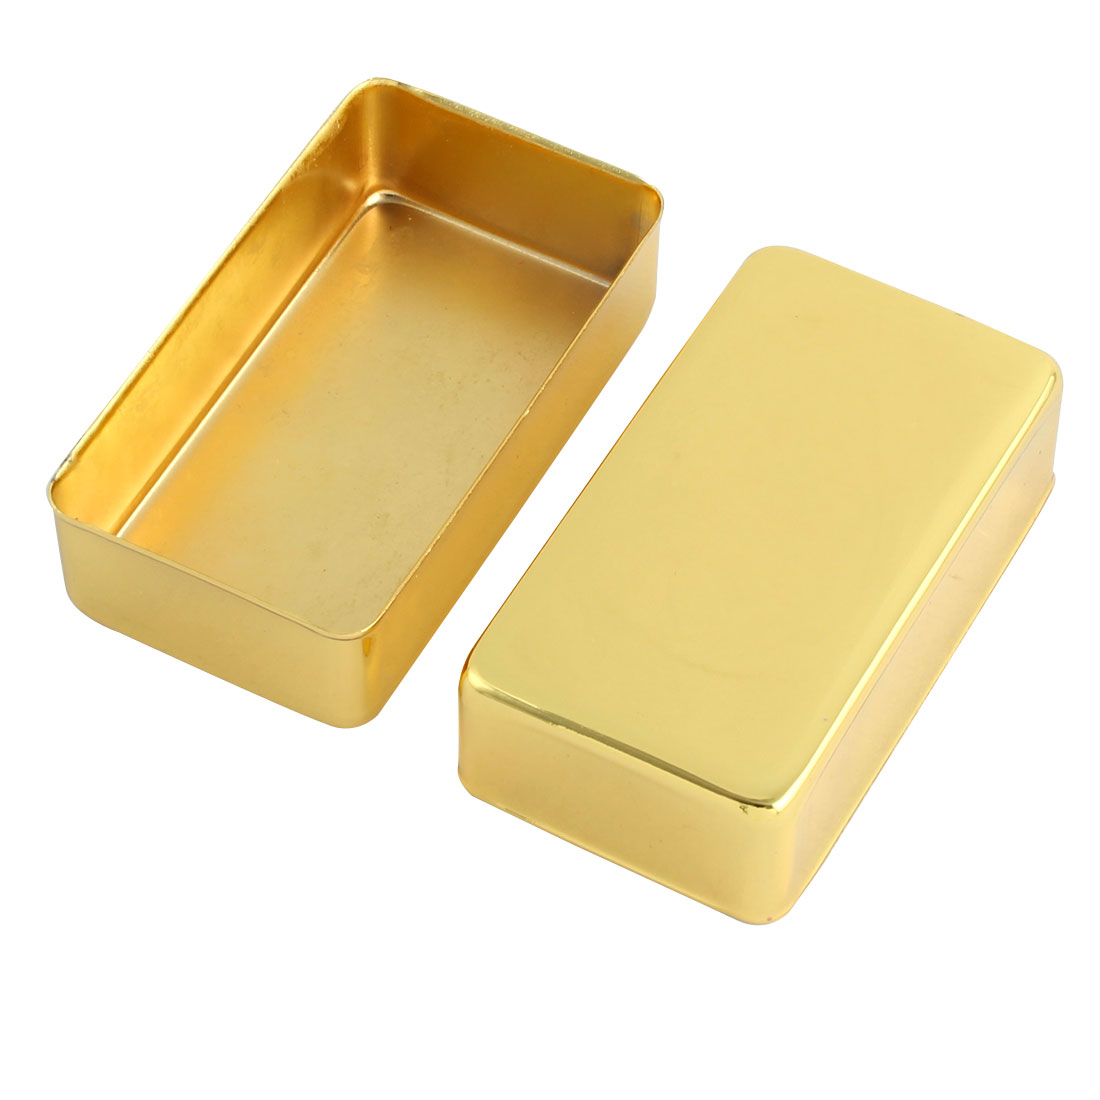 Metal Acoustic No-Hole Humbucker Guitar Pickup Cover Gold Tone 7 x 4 x 2cm 2pcs